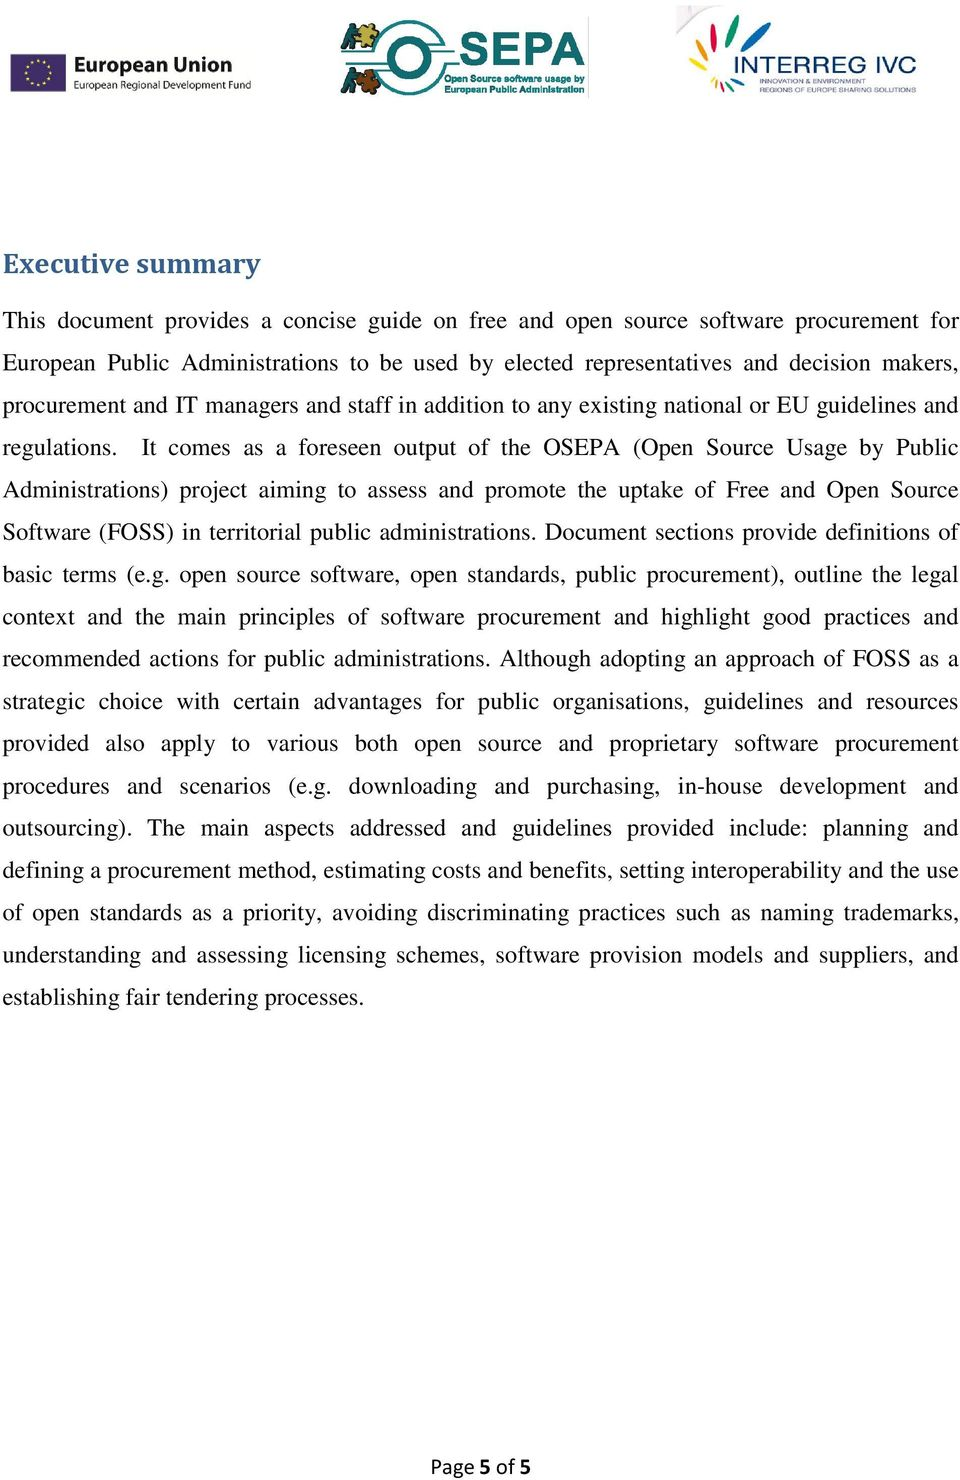 It comes as a foreseen output of the OSEPA (Open Source Usage by Public Administrations) project aiming to assess and promote the uptake of Free and Open Source Software (FOSS) in territorial public